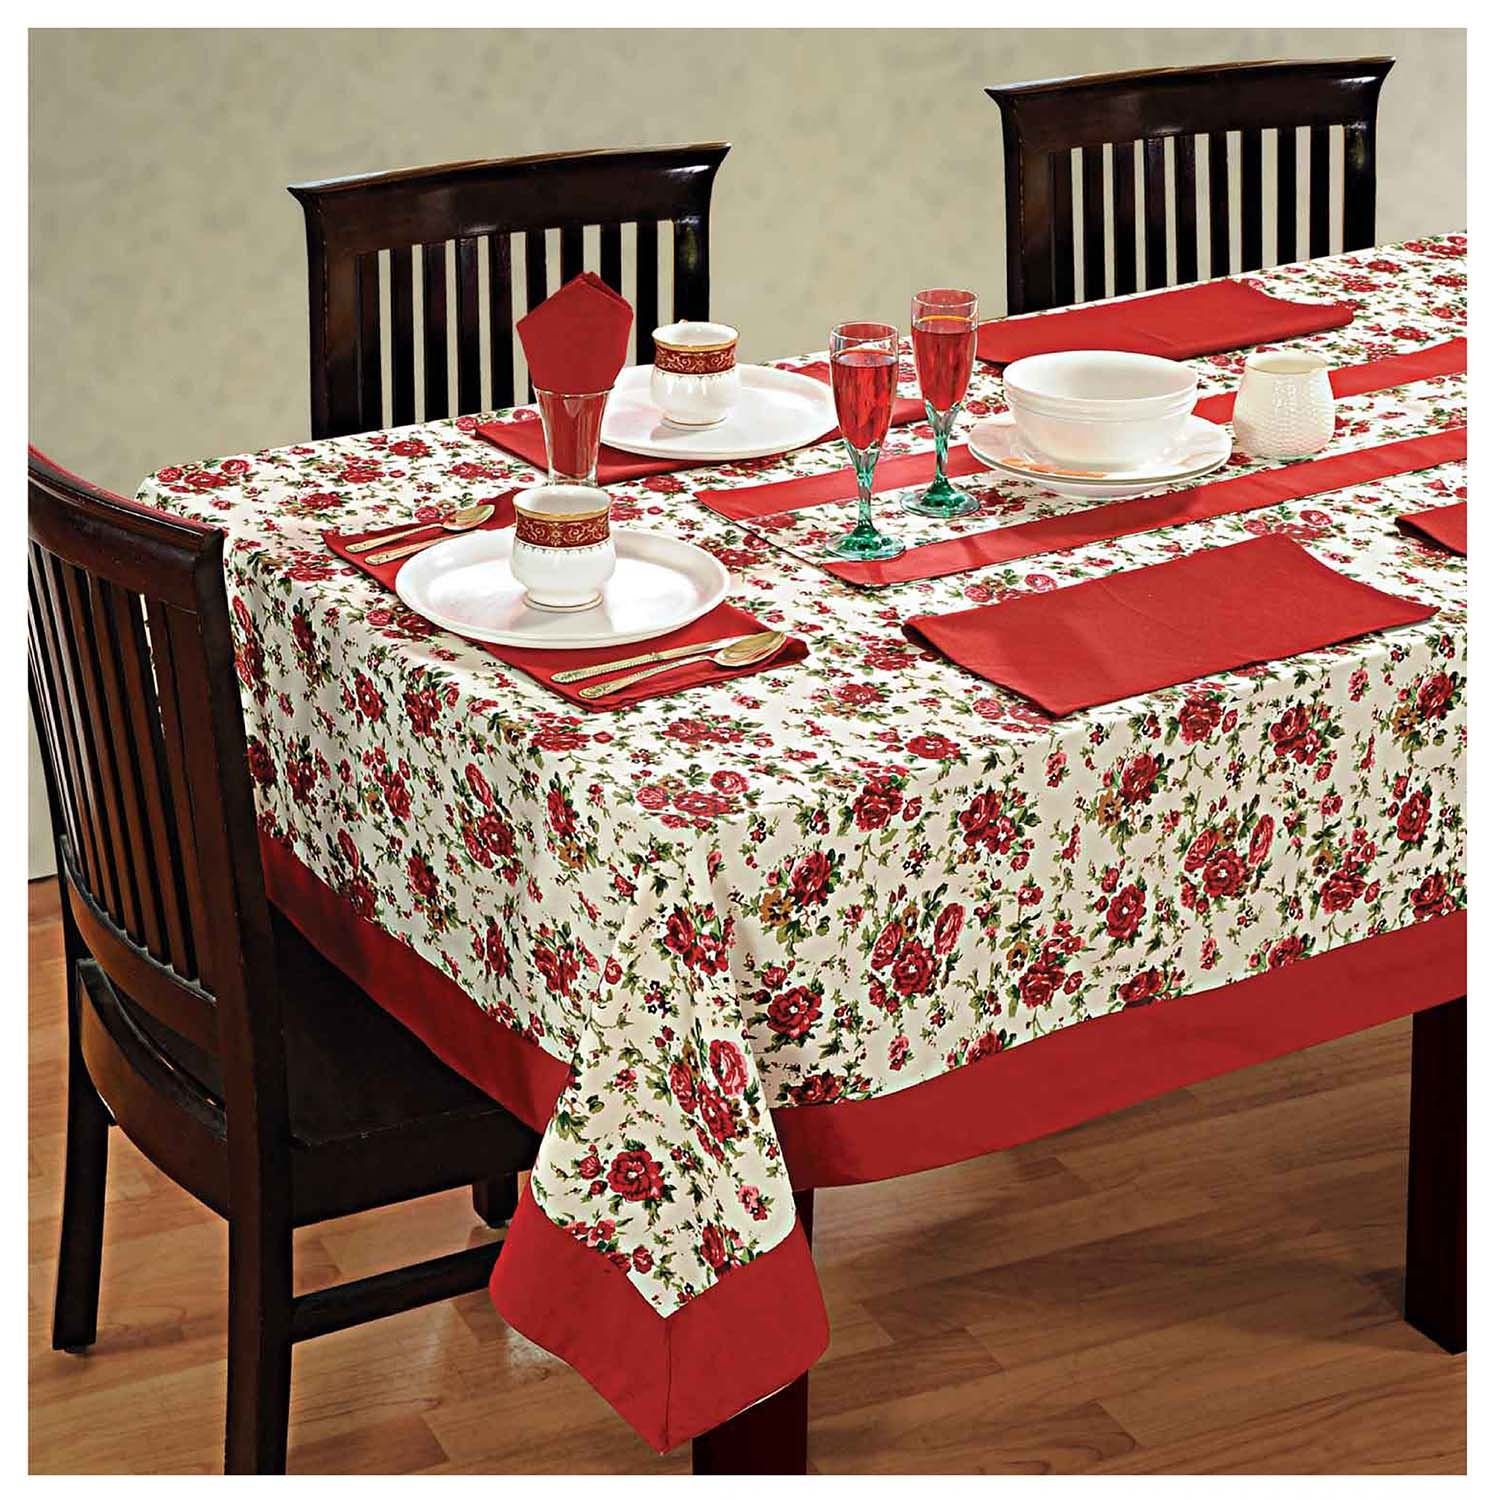 dinner party table linen set 6 seater kitchen dining tablecloth napkins cloth ebay. Black Bedroom Furniture Sets. Home Design Ideas